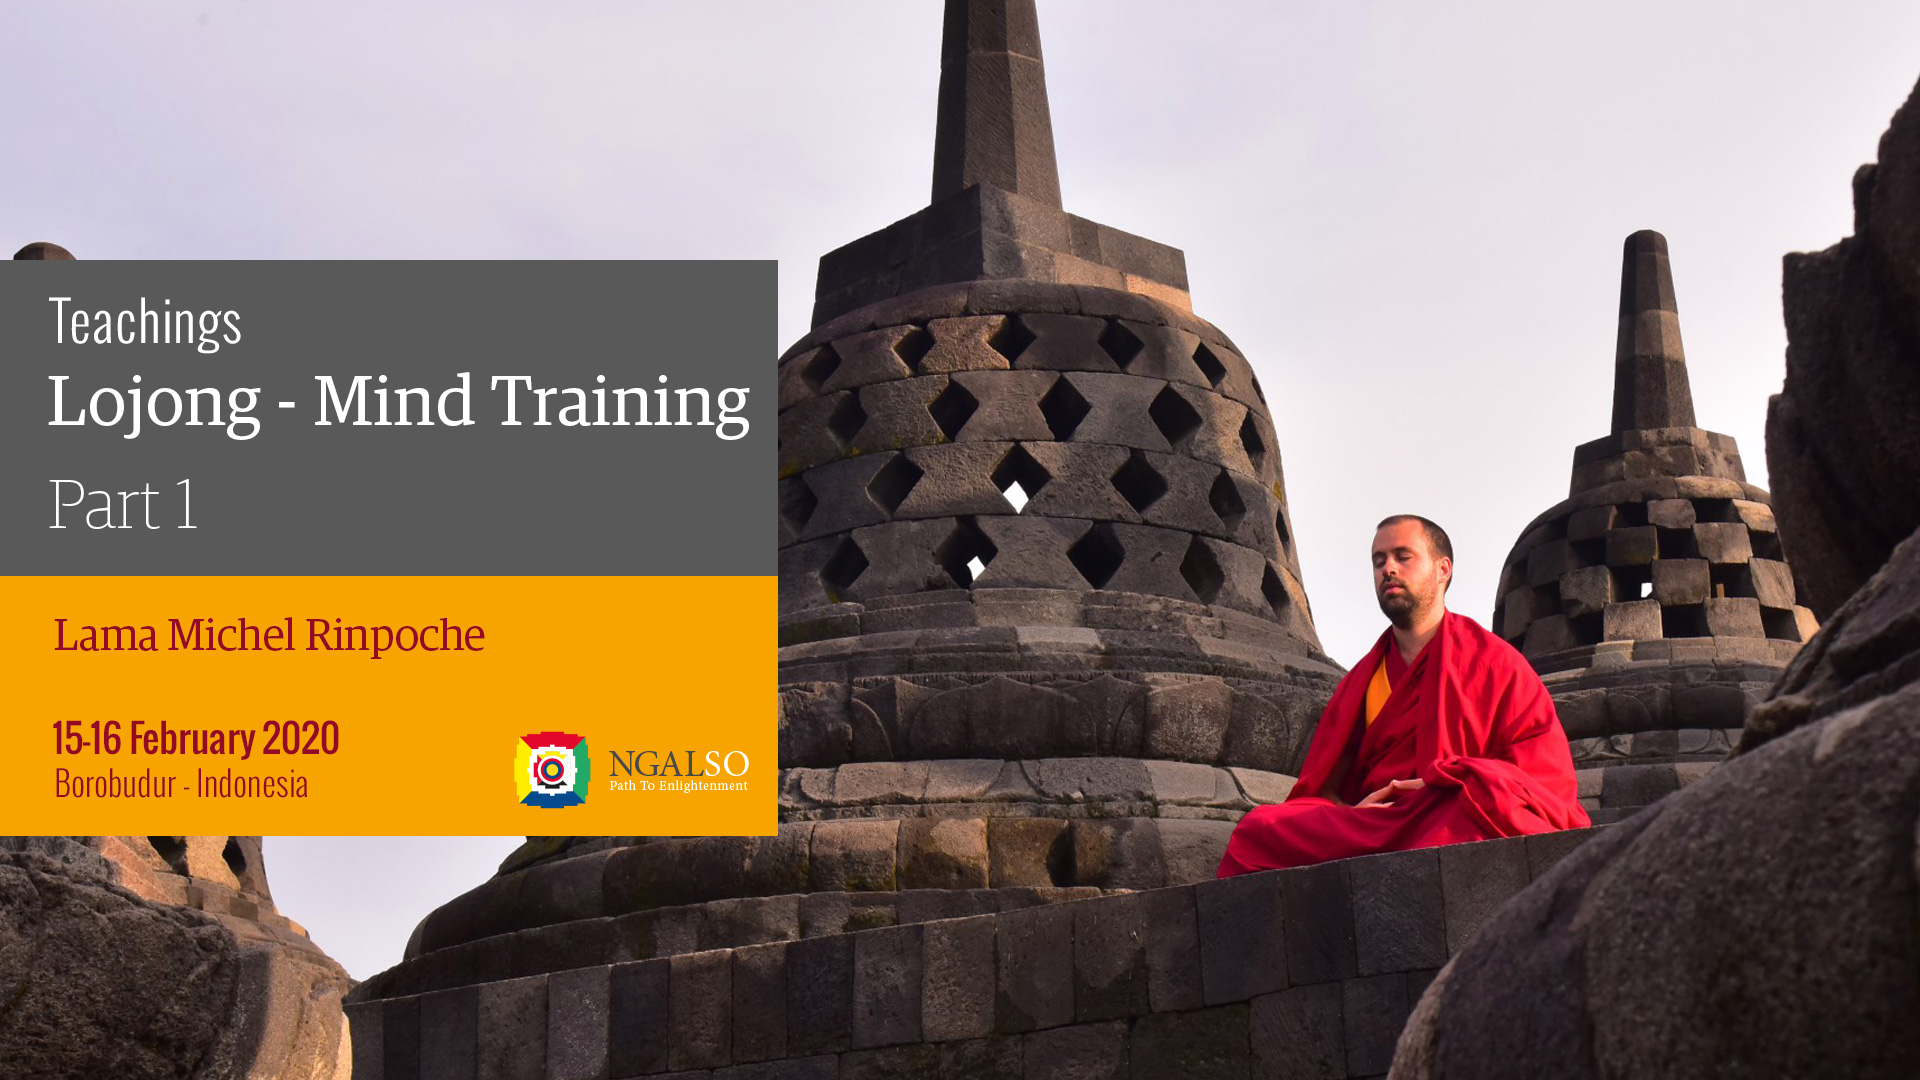 Teachings: Lojong Mind Training – Lama Michel Rinpoche at Borobudur – (English)